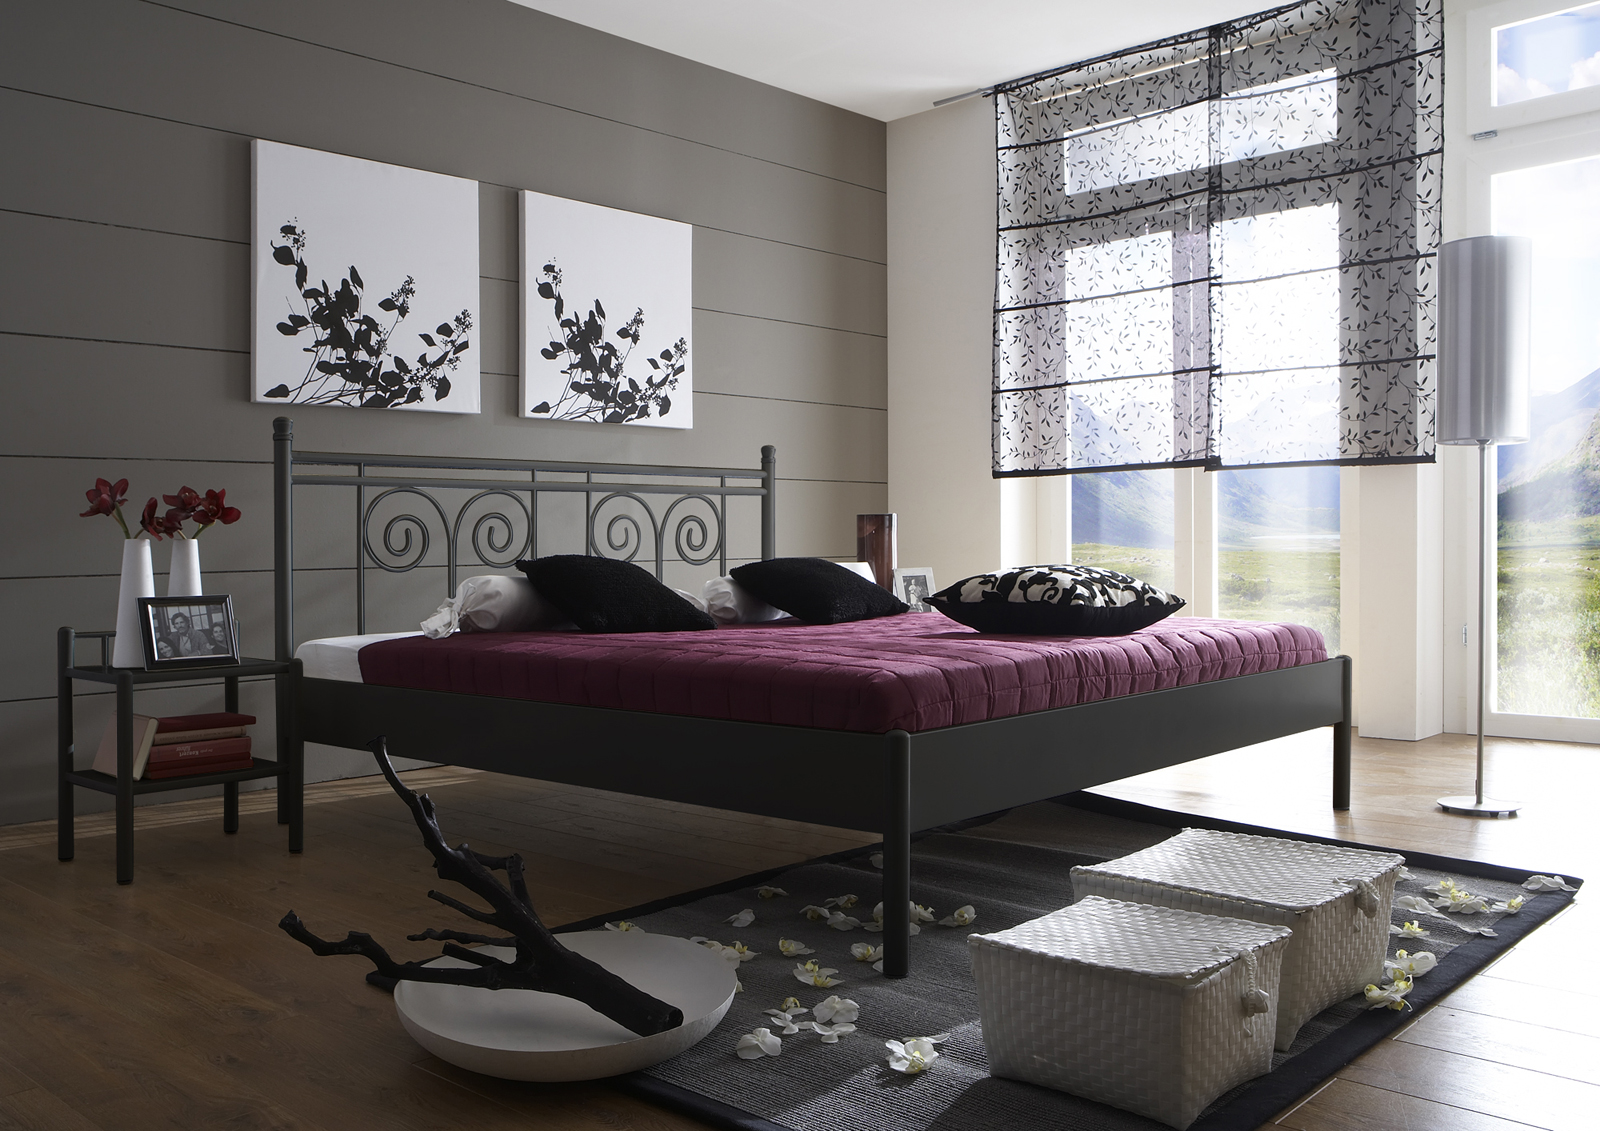 sam metallbett schwarz 180 x 200 cm kos auf lager. Black Bedroom Furniture Sets. Home Design Ideas